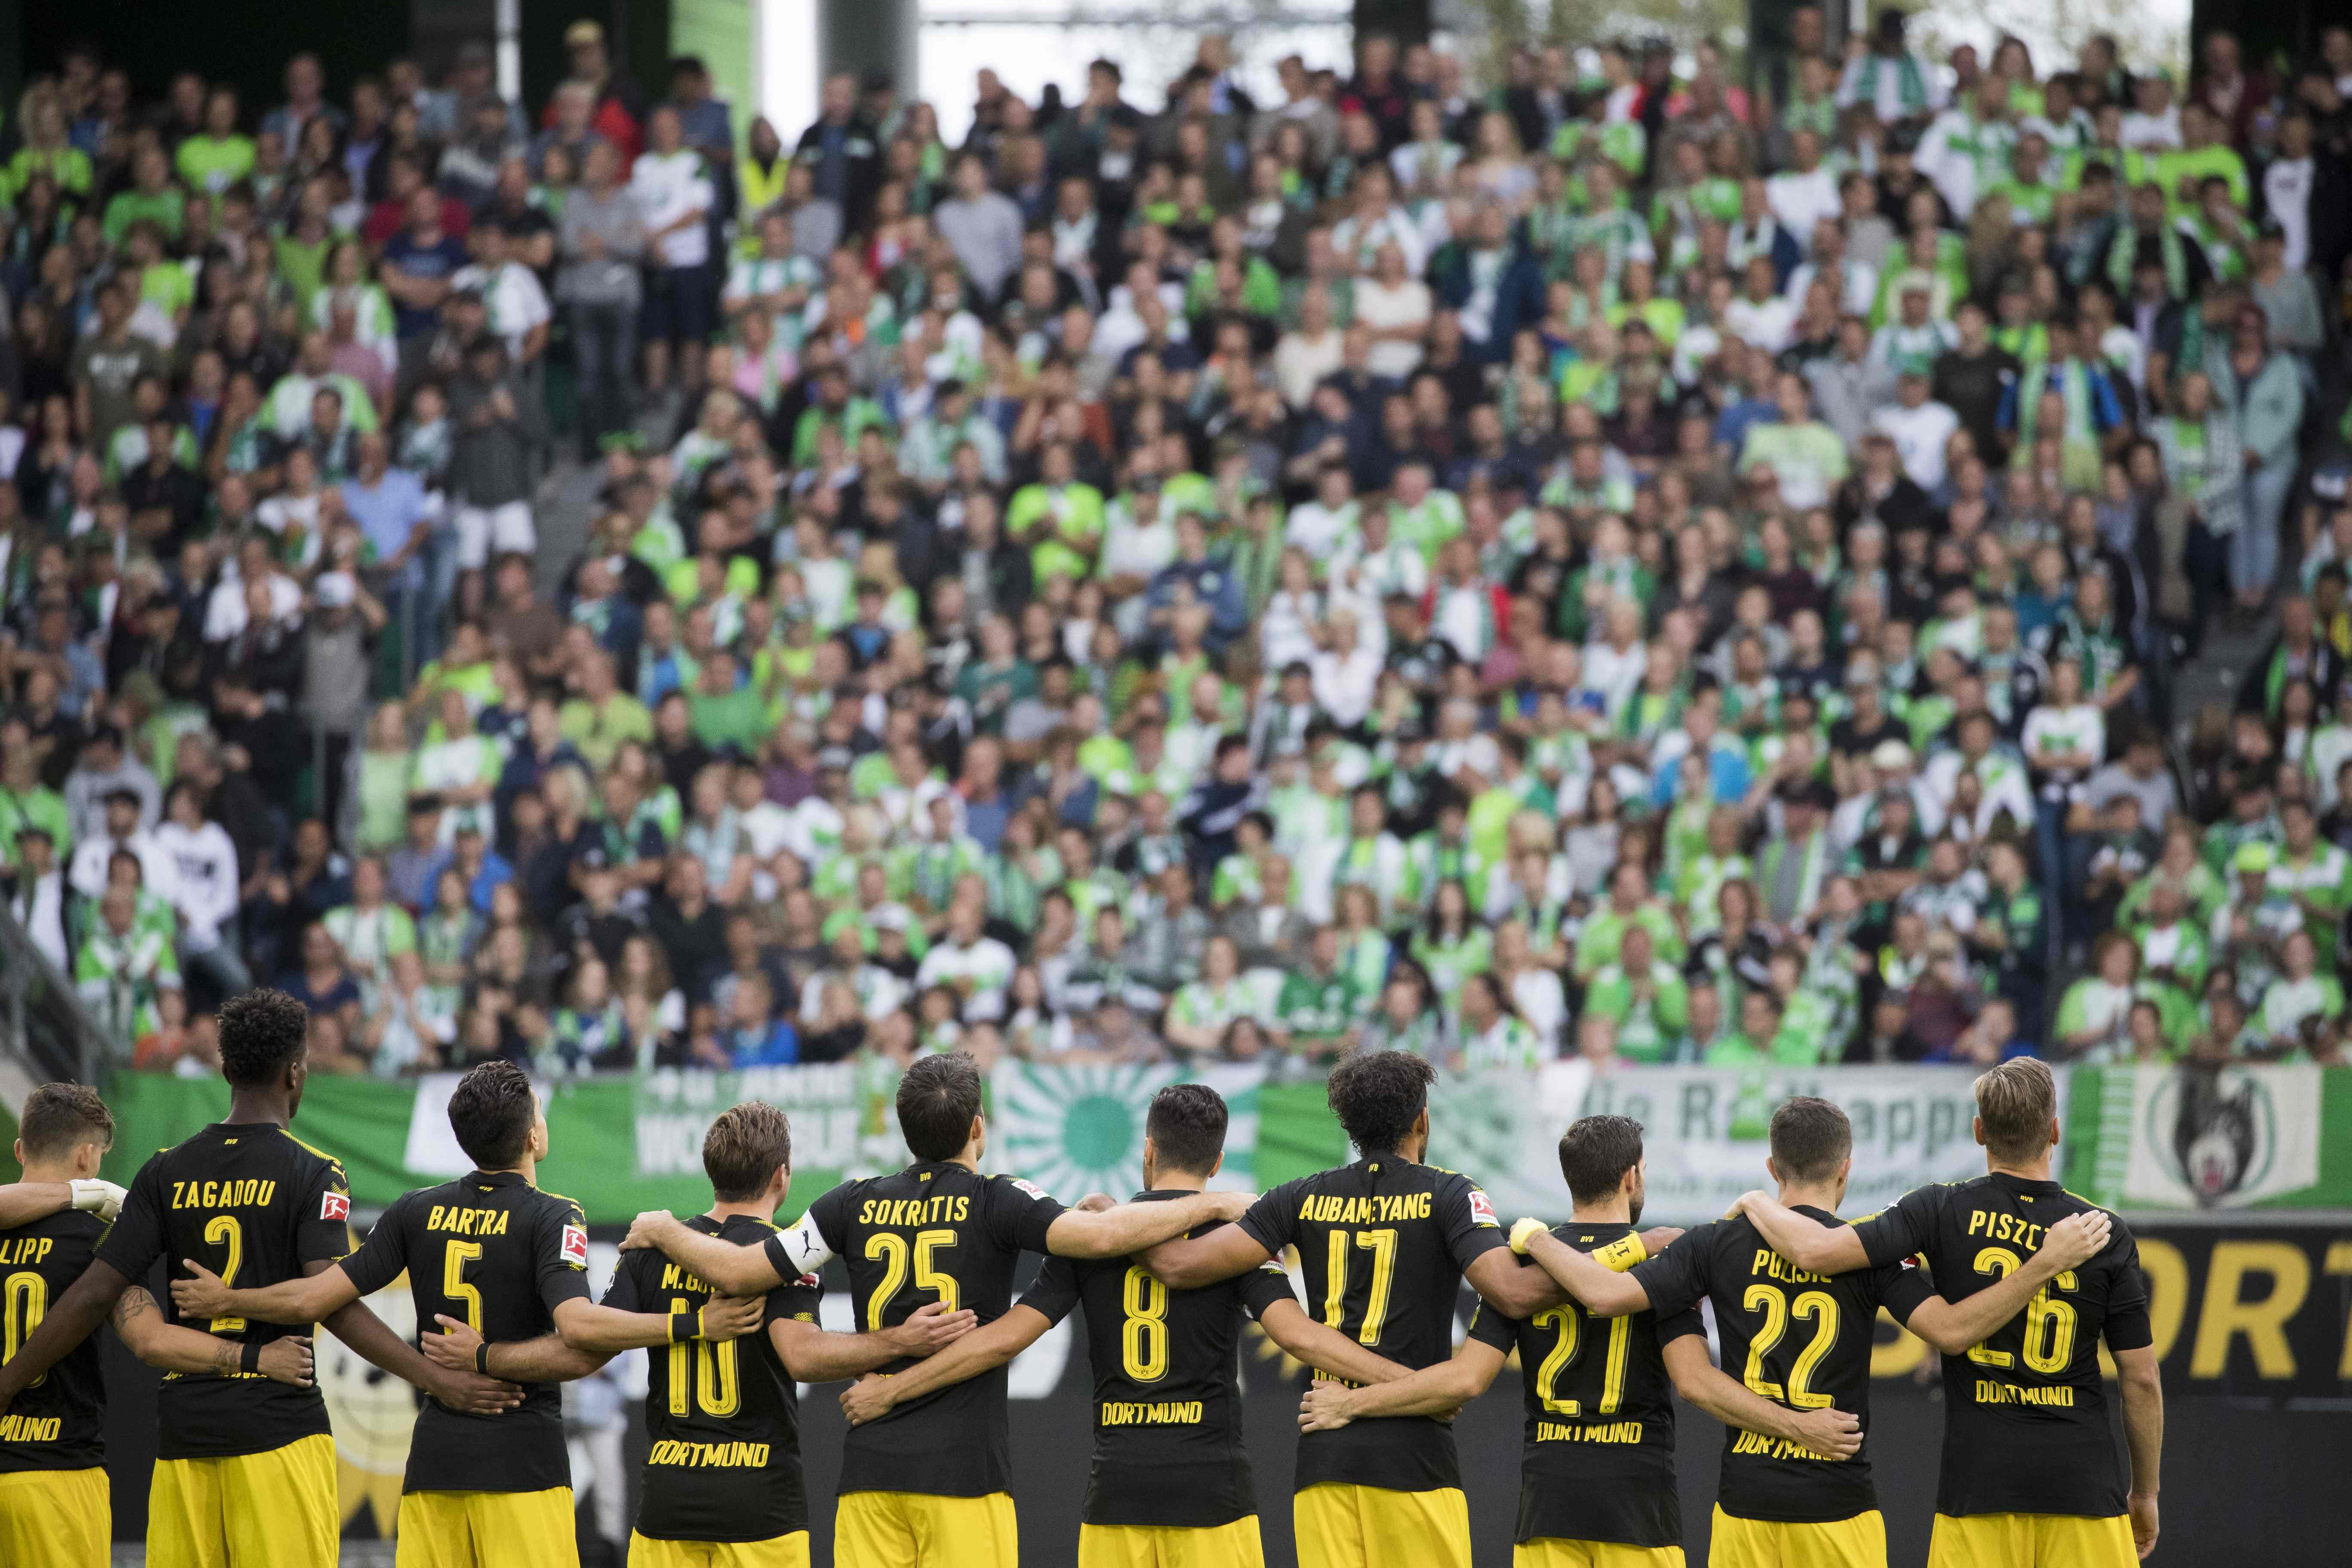 There was a moments silence before kick-off